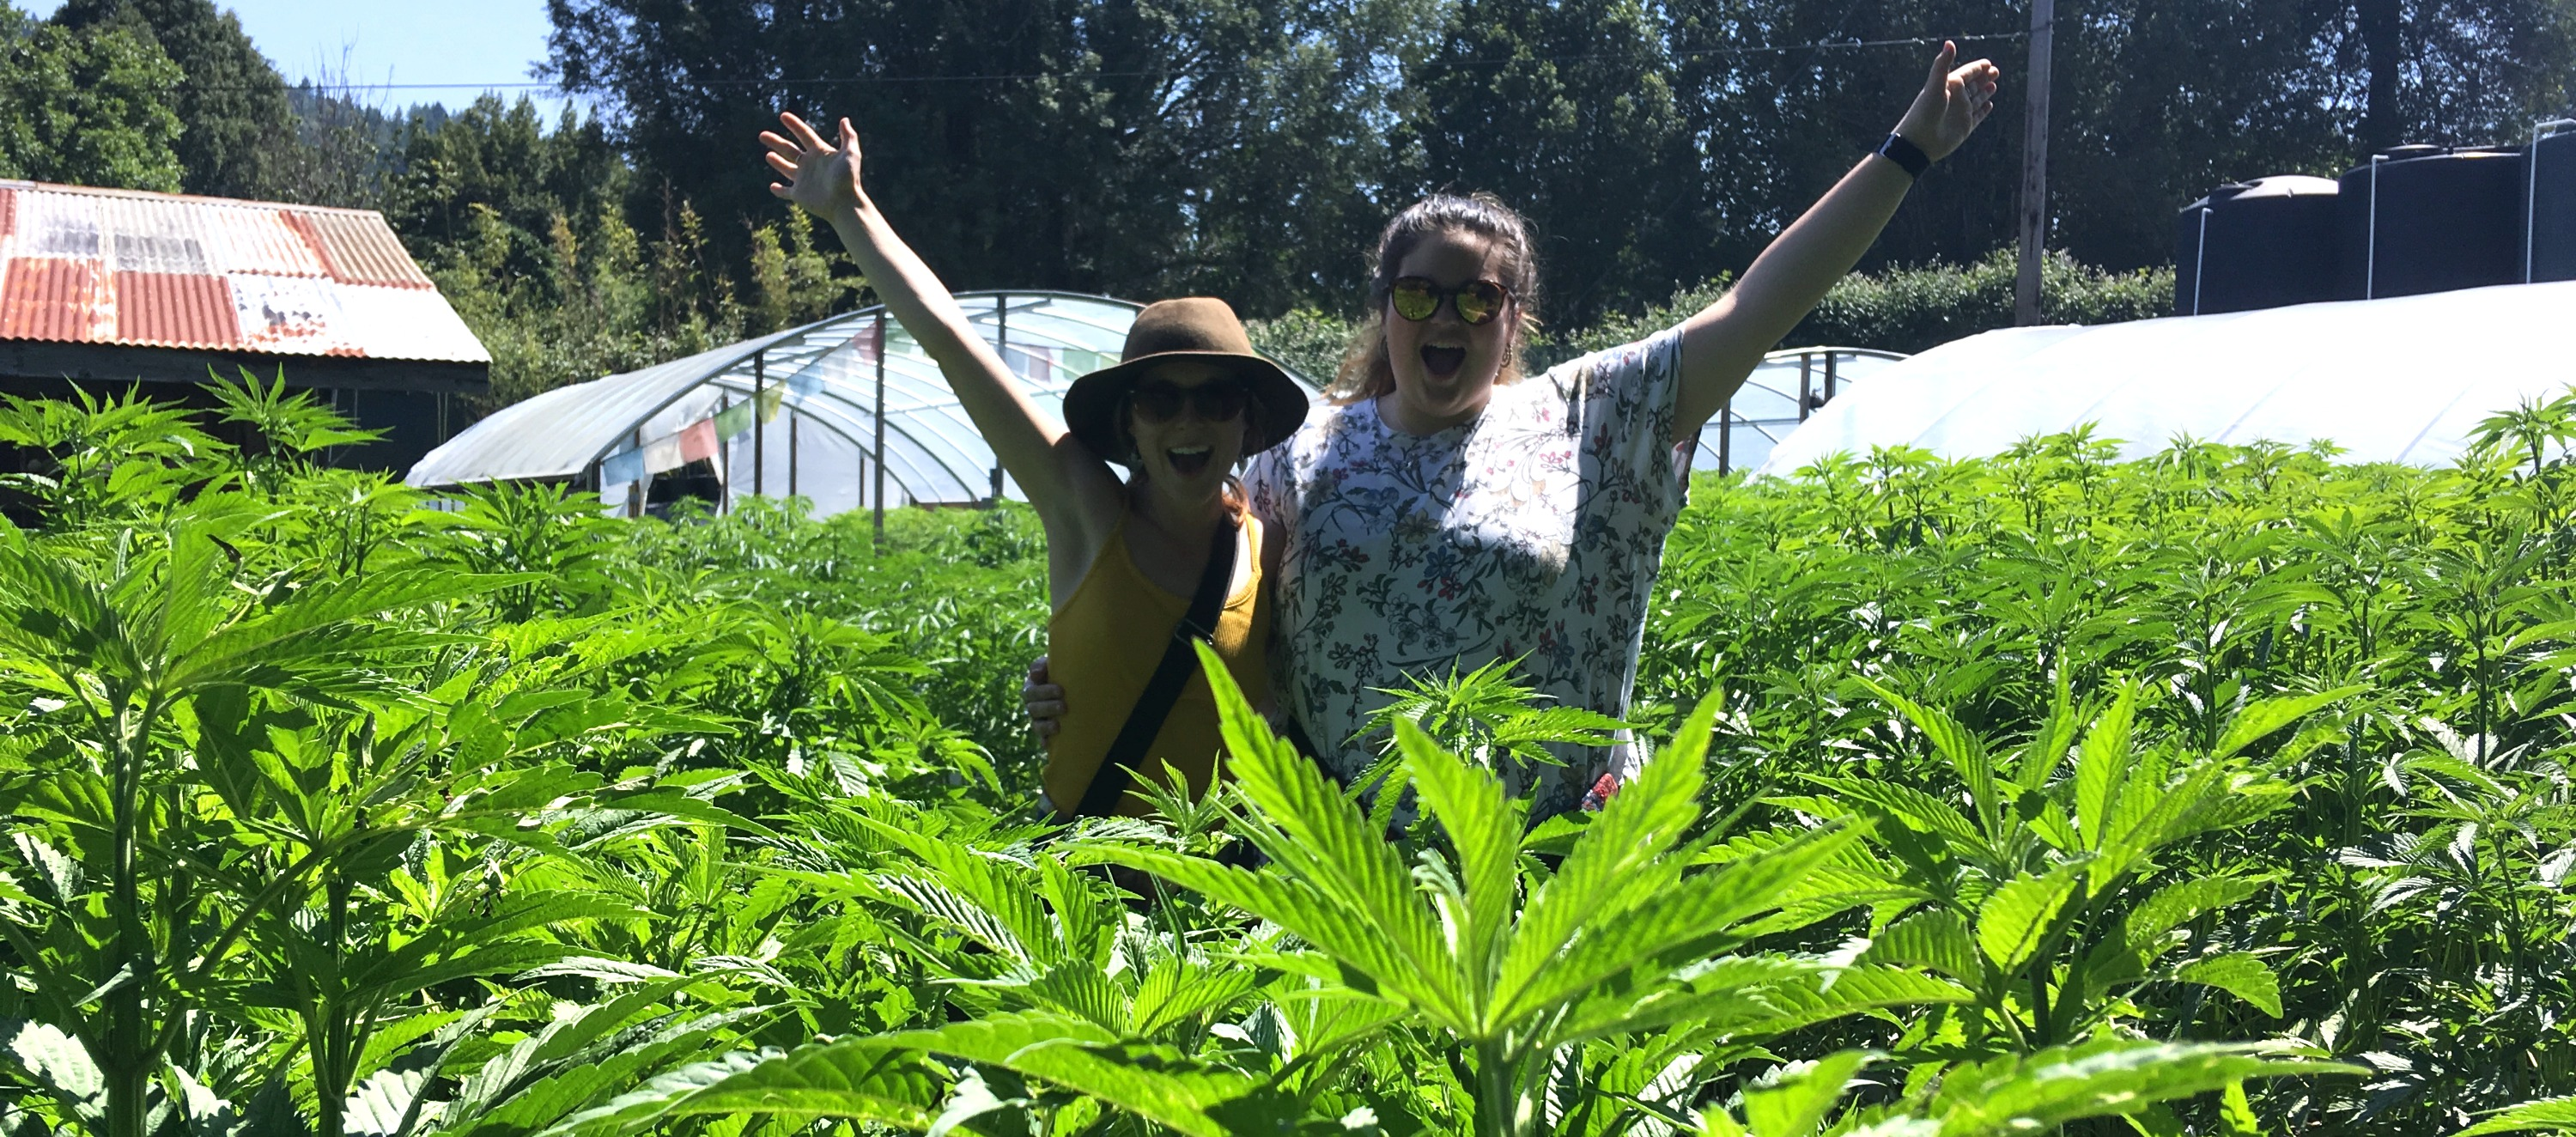 Friends at the Cannabis Farm